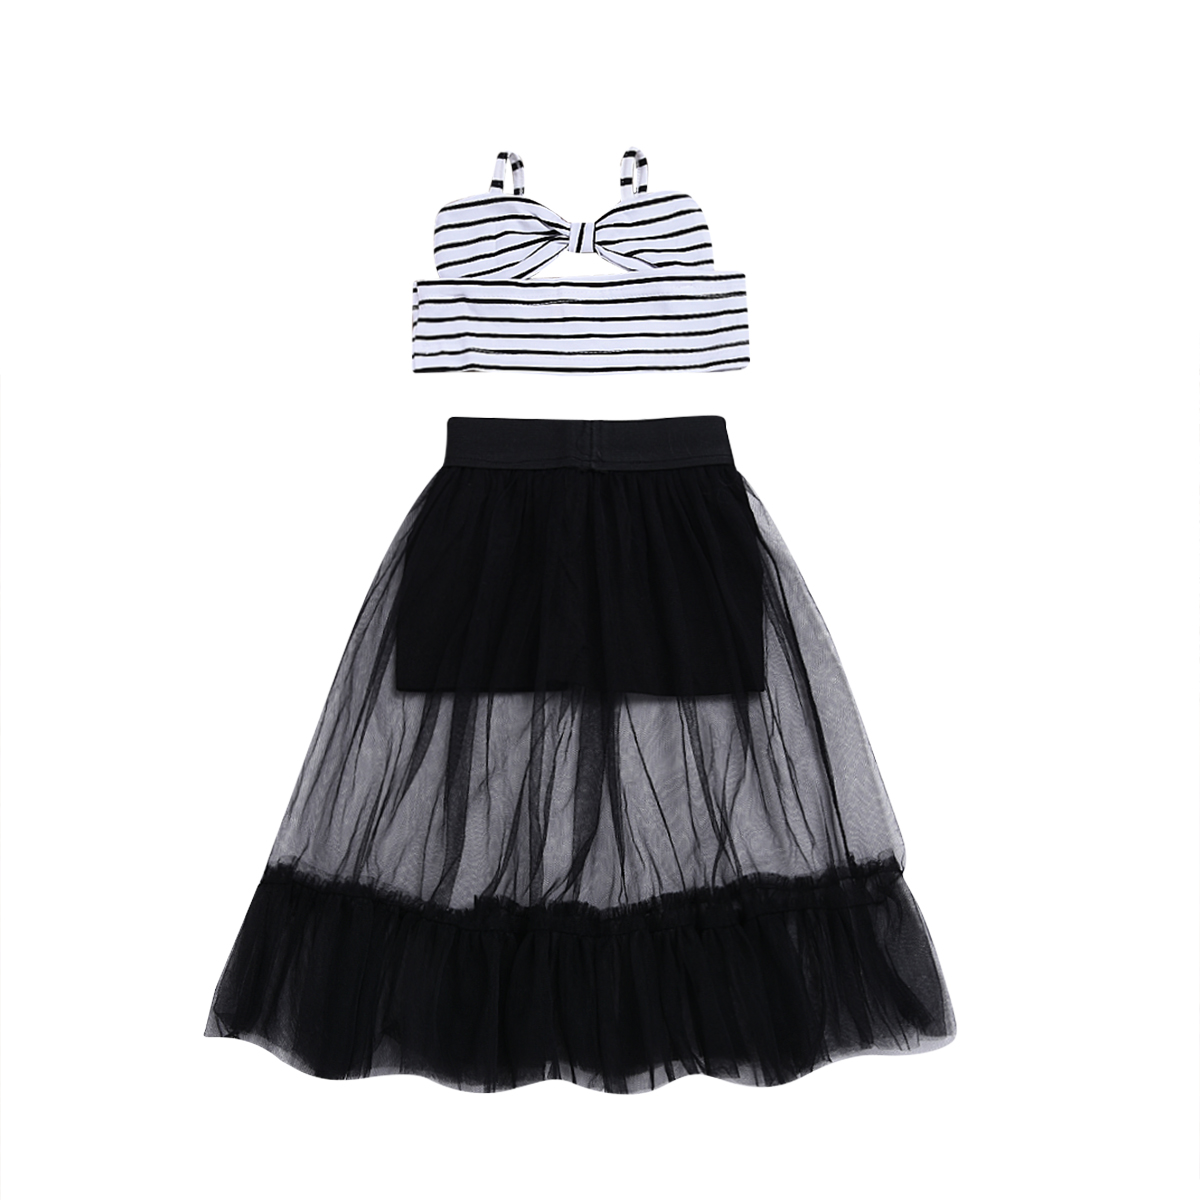 Fashion Kids Baby Girls Outfits Off Shoulder Striped Crop Tops Voile Ruffles Skirt Outfits 2018 Summer Baby Clothes 2016 summer baby child girls outfits ruffles shorts white striped watermelon boutique ruffles clothes kids matching headband set